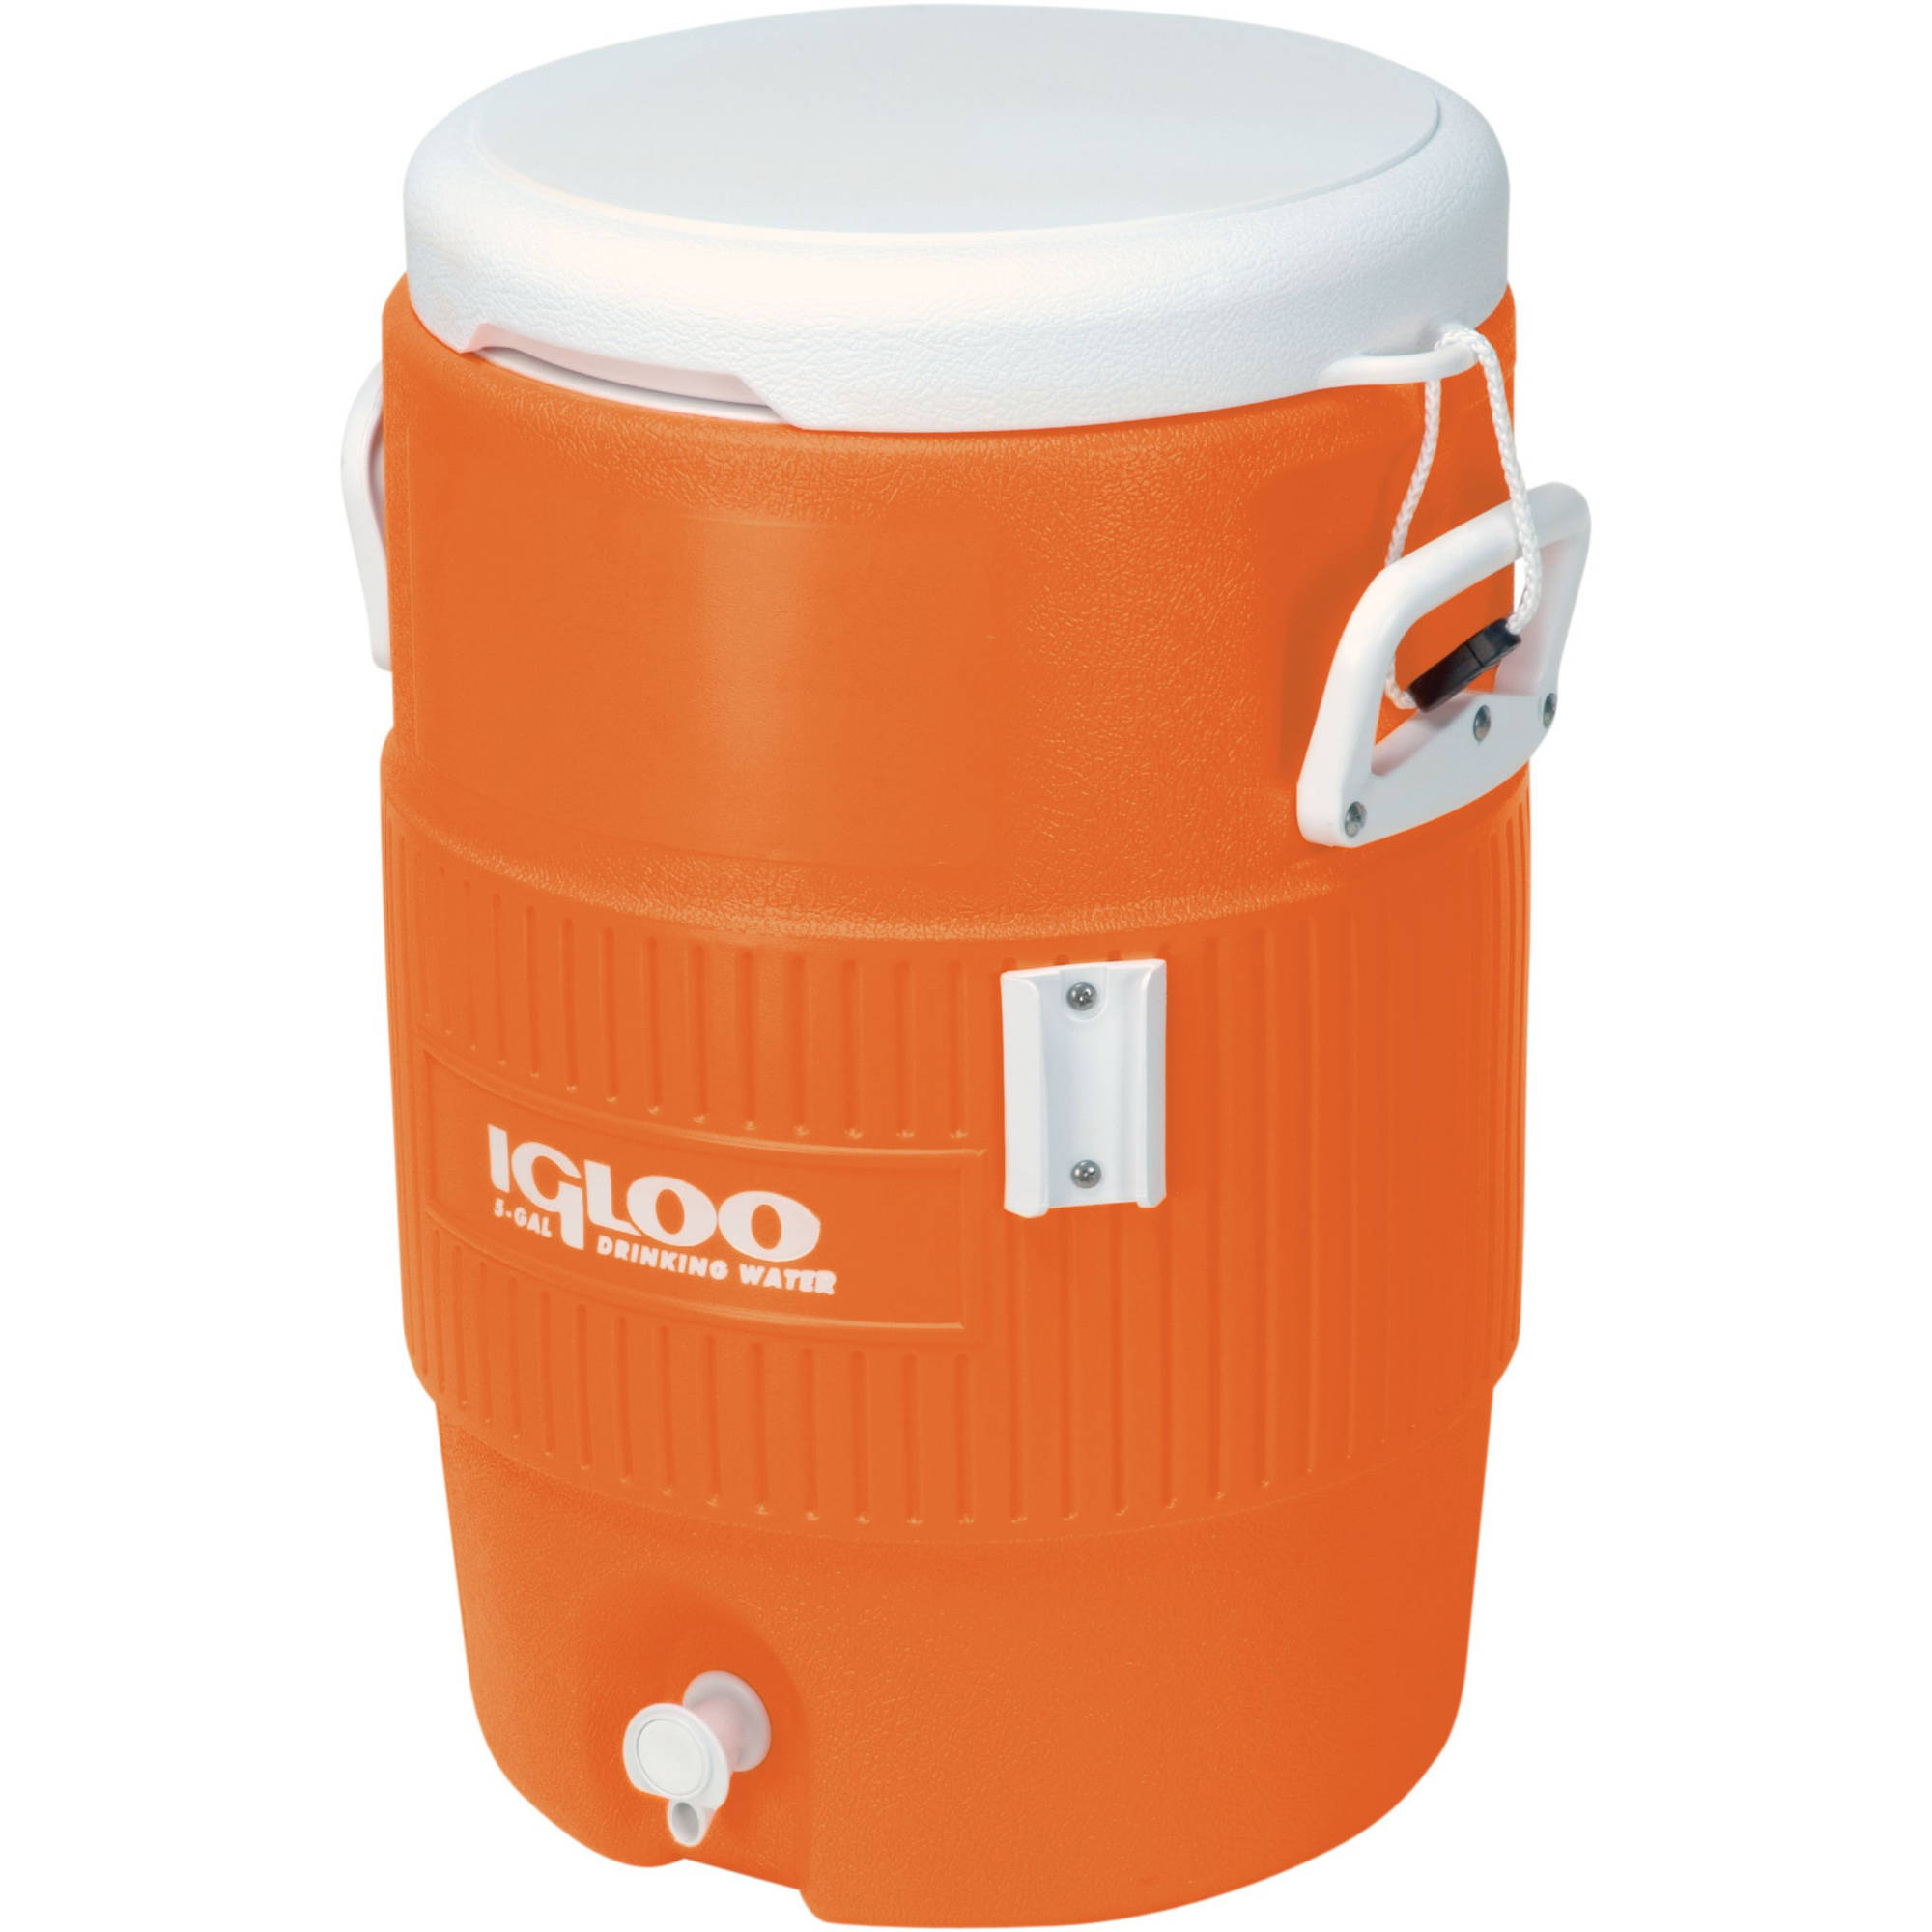 Igloo 5-Gallon Heavy-Duty Beverage Cooler, Orange by Generic